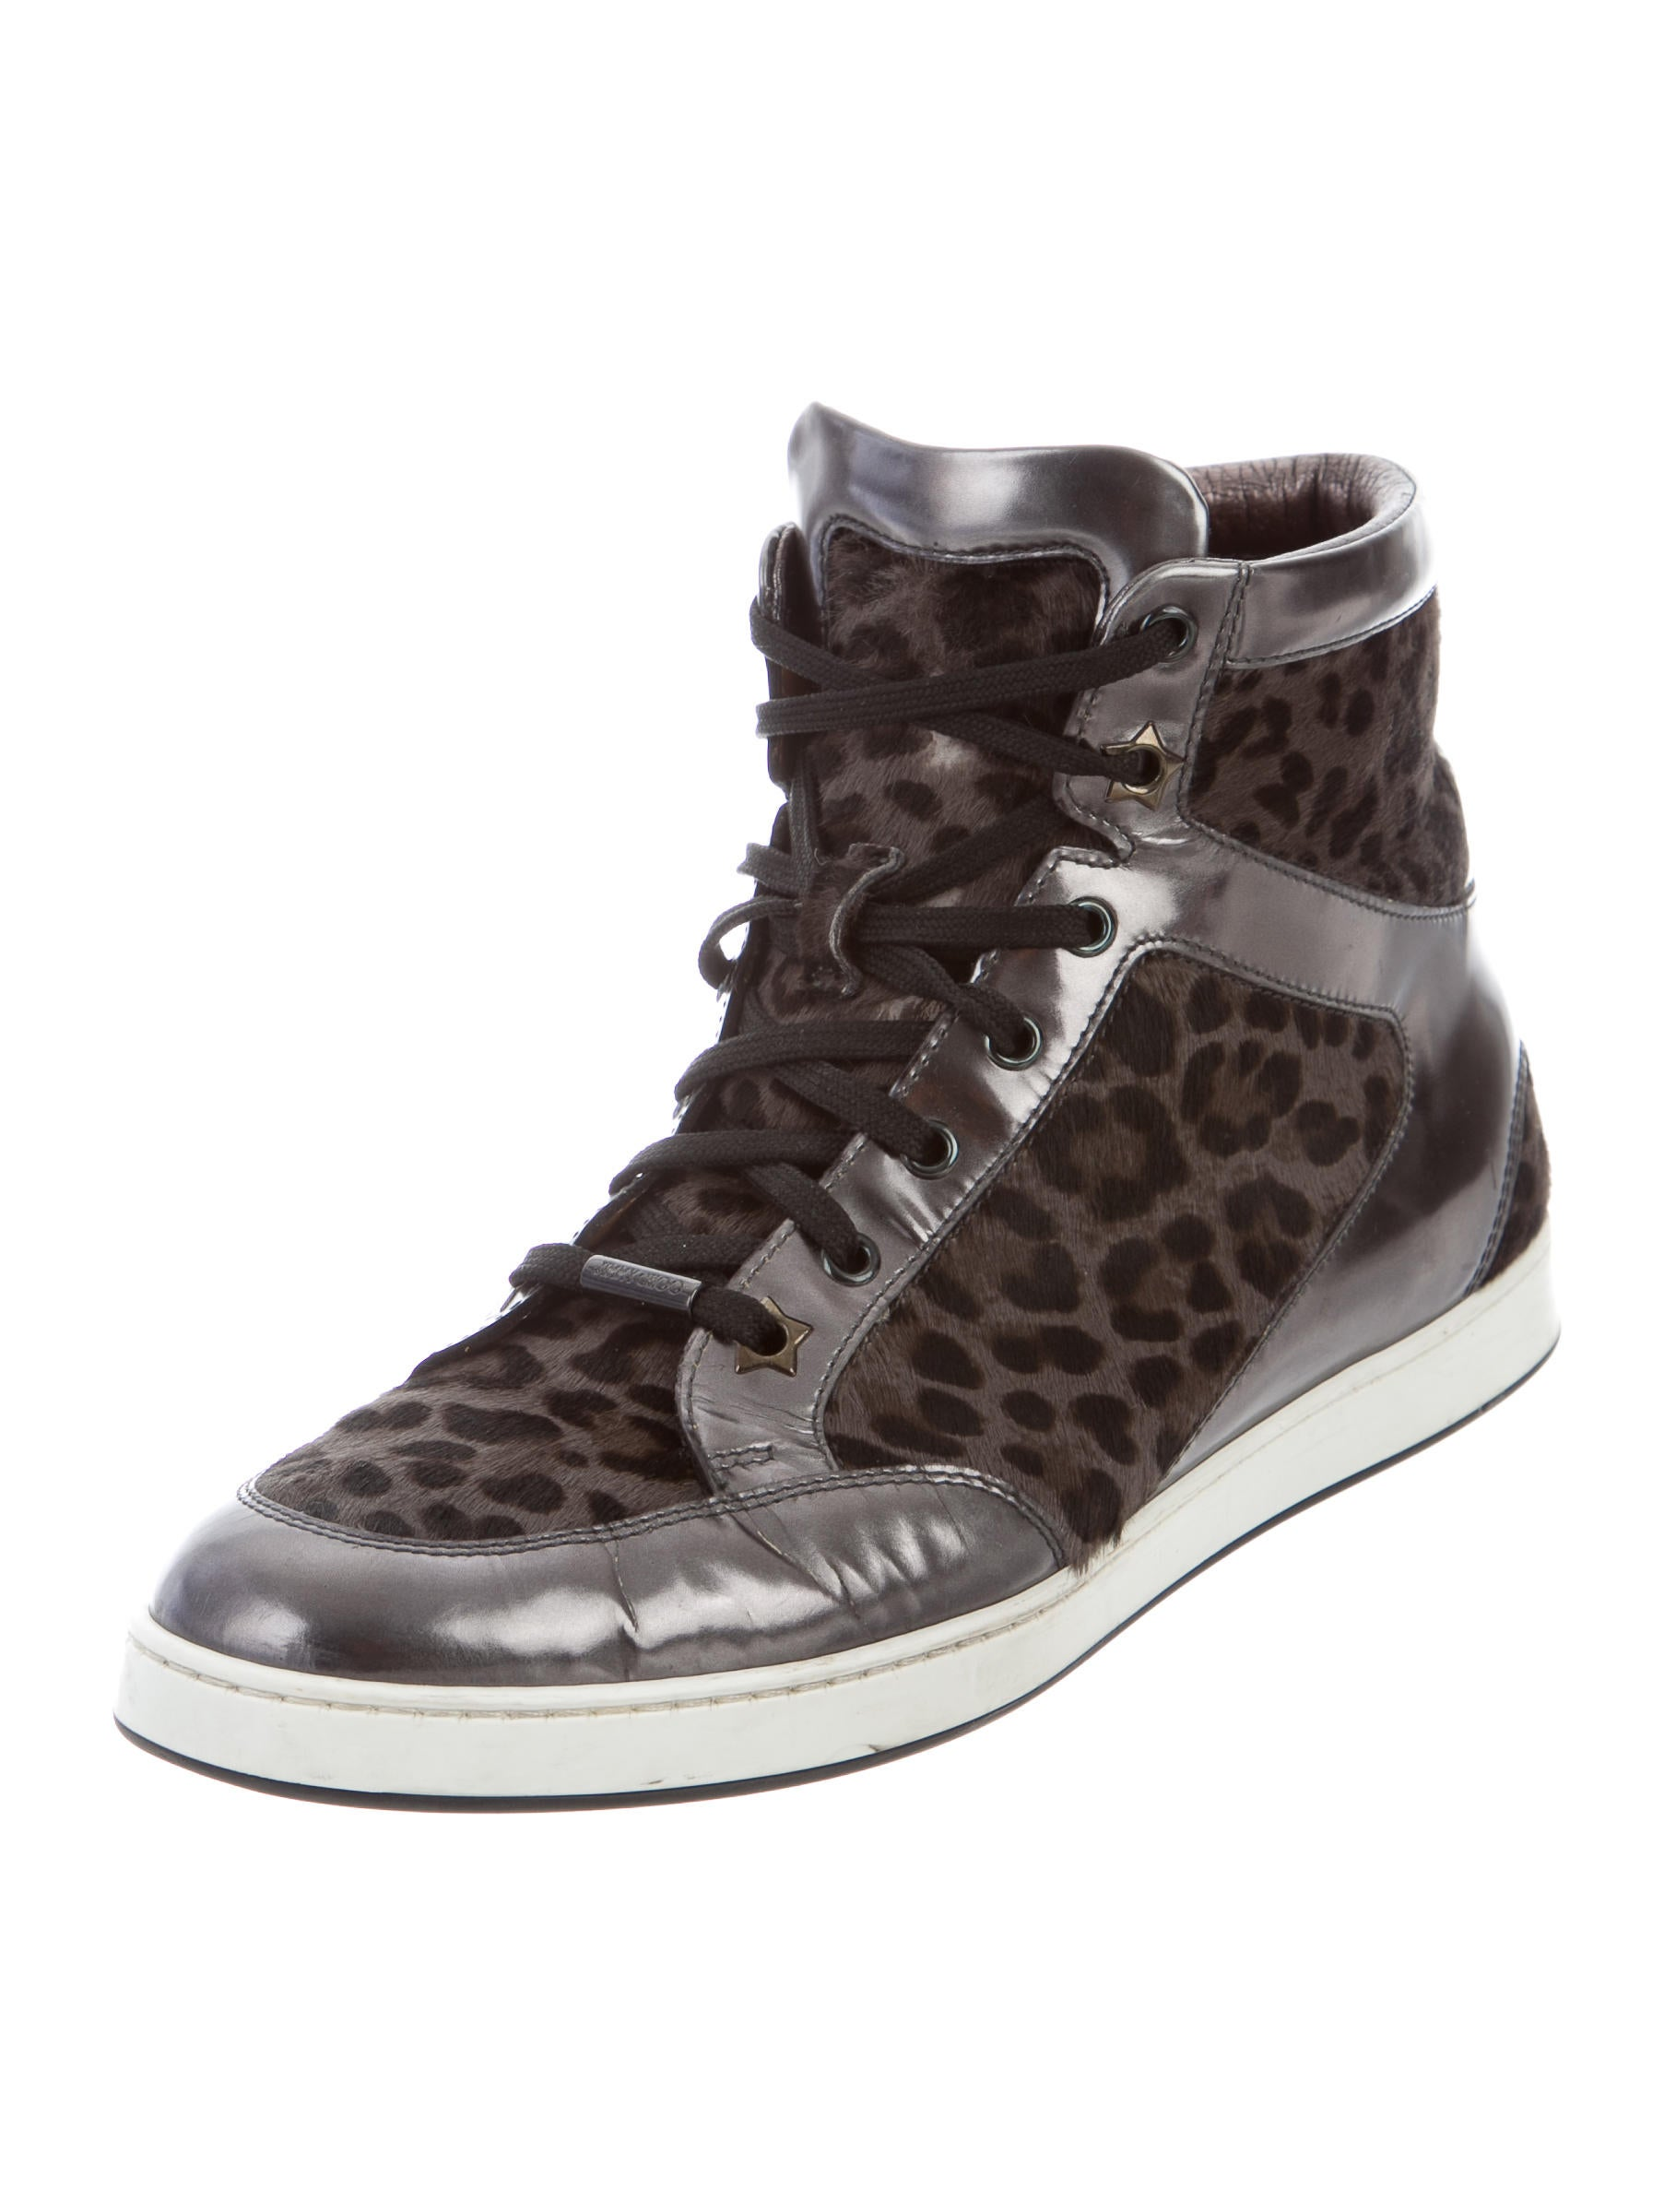 jimmy choo leopard high top sneakers shoes jim68017 the realreal. Black Bedroom Furniture Sets. Home Design Ideas